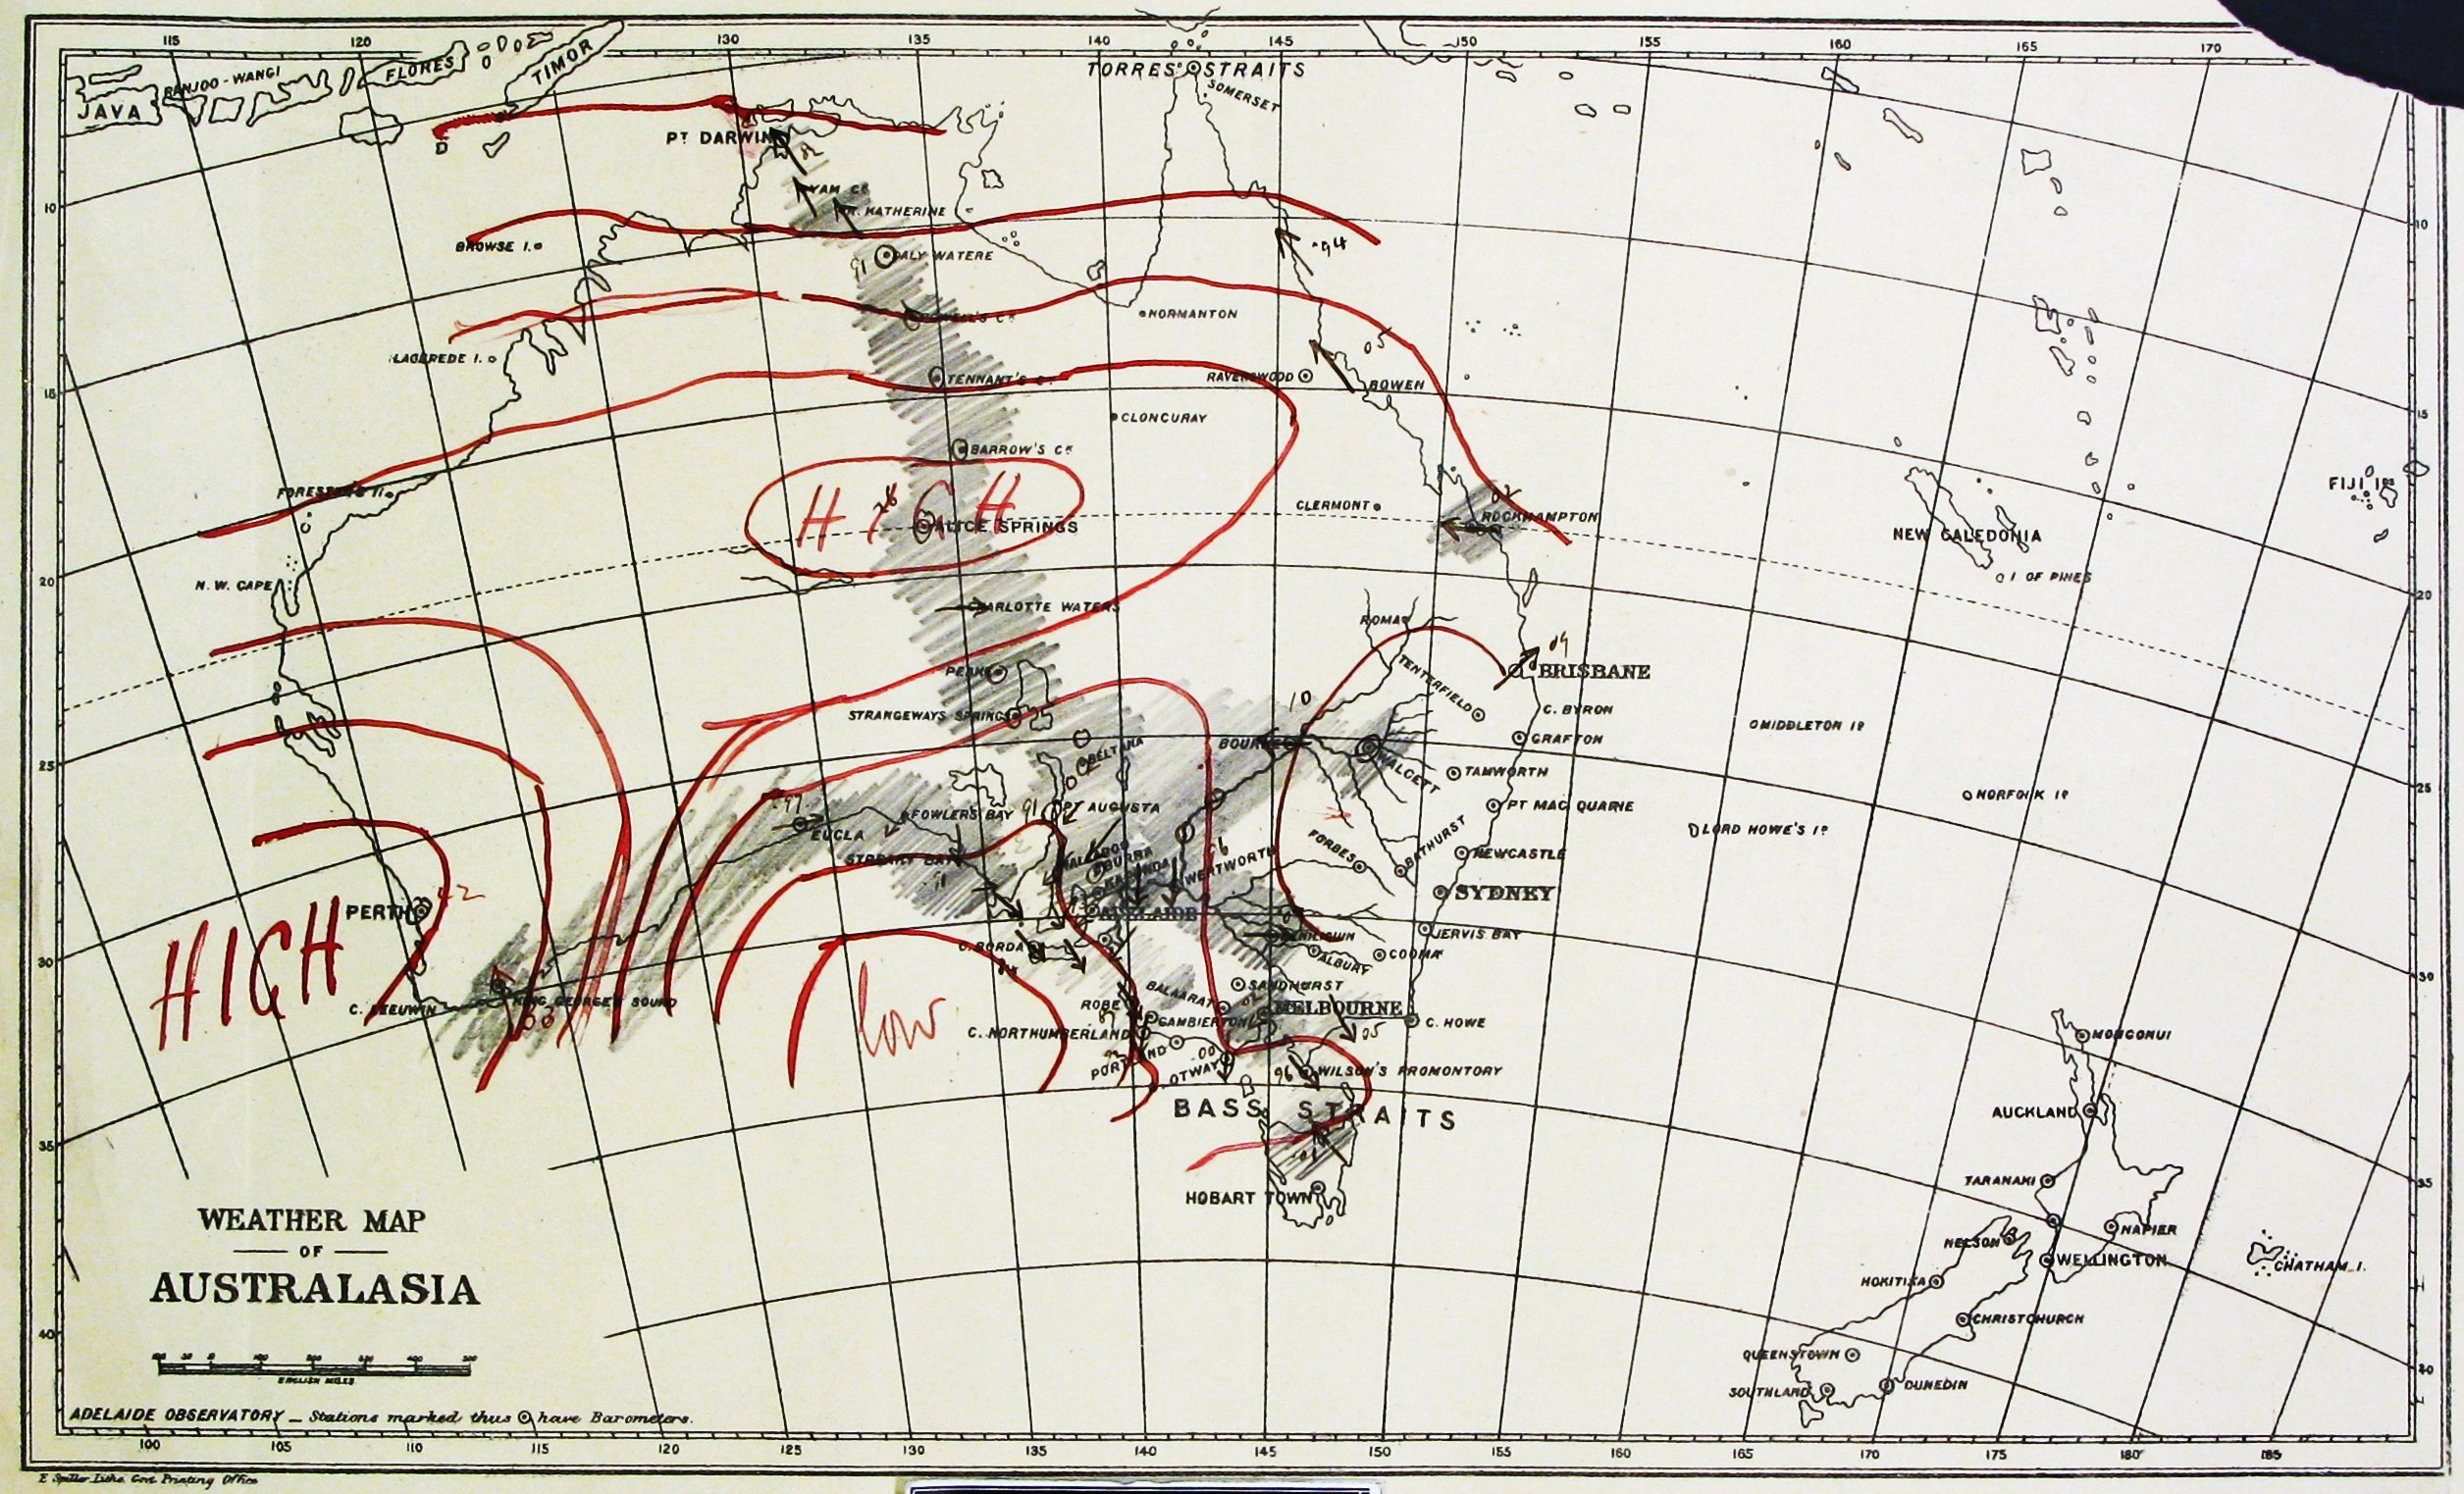 Aviation Weather Charts: Todd Weather Folios Early synoptic chart 1882 May 29.jpg ,Chart